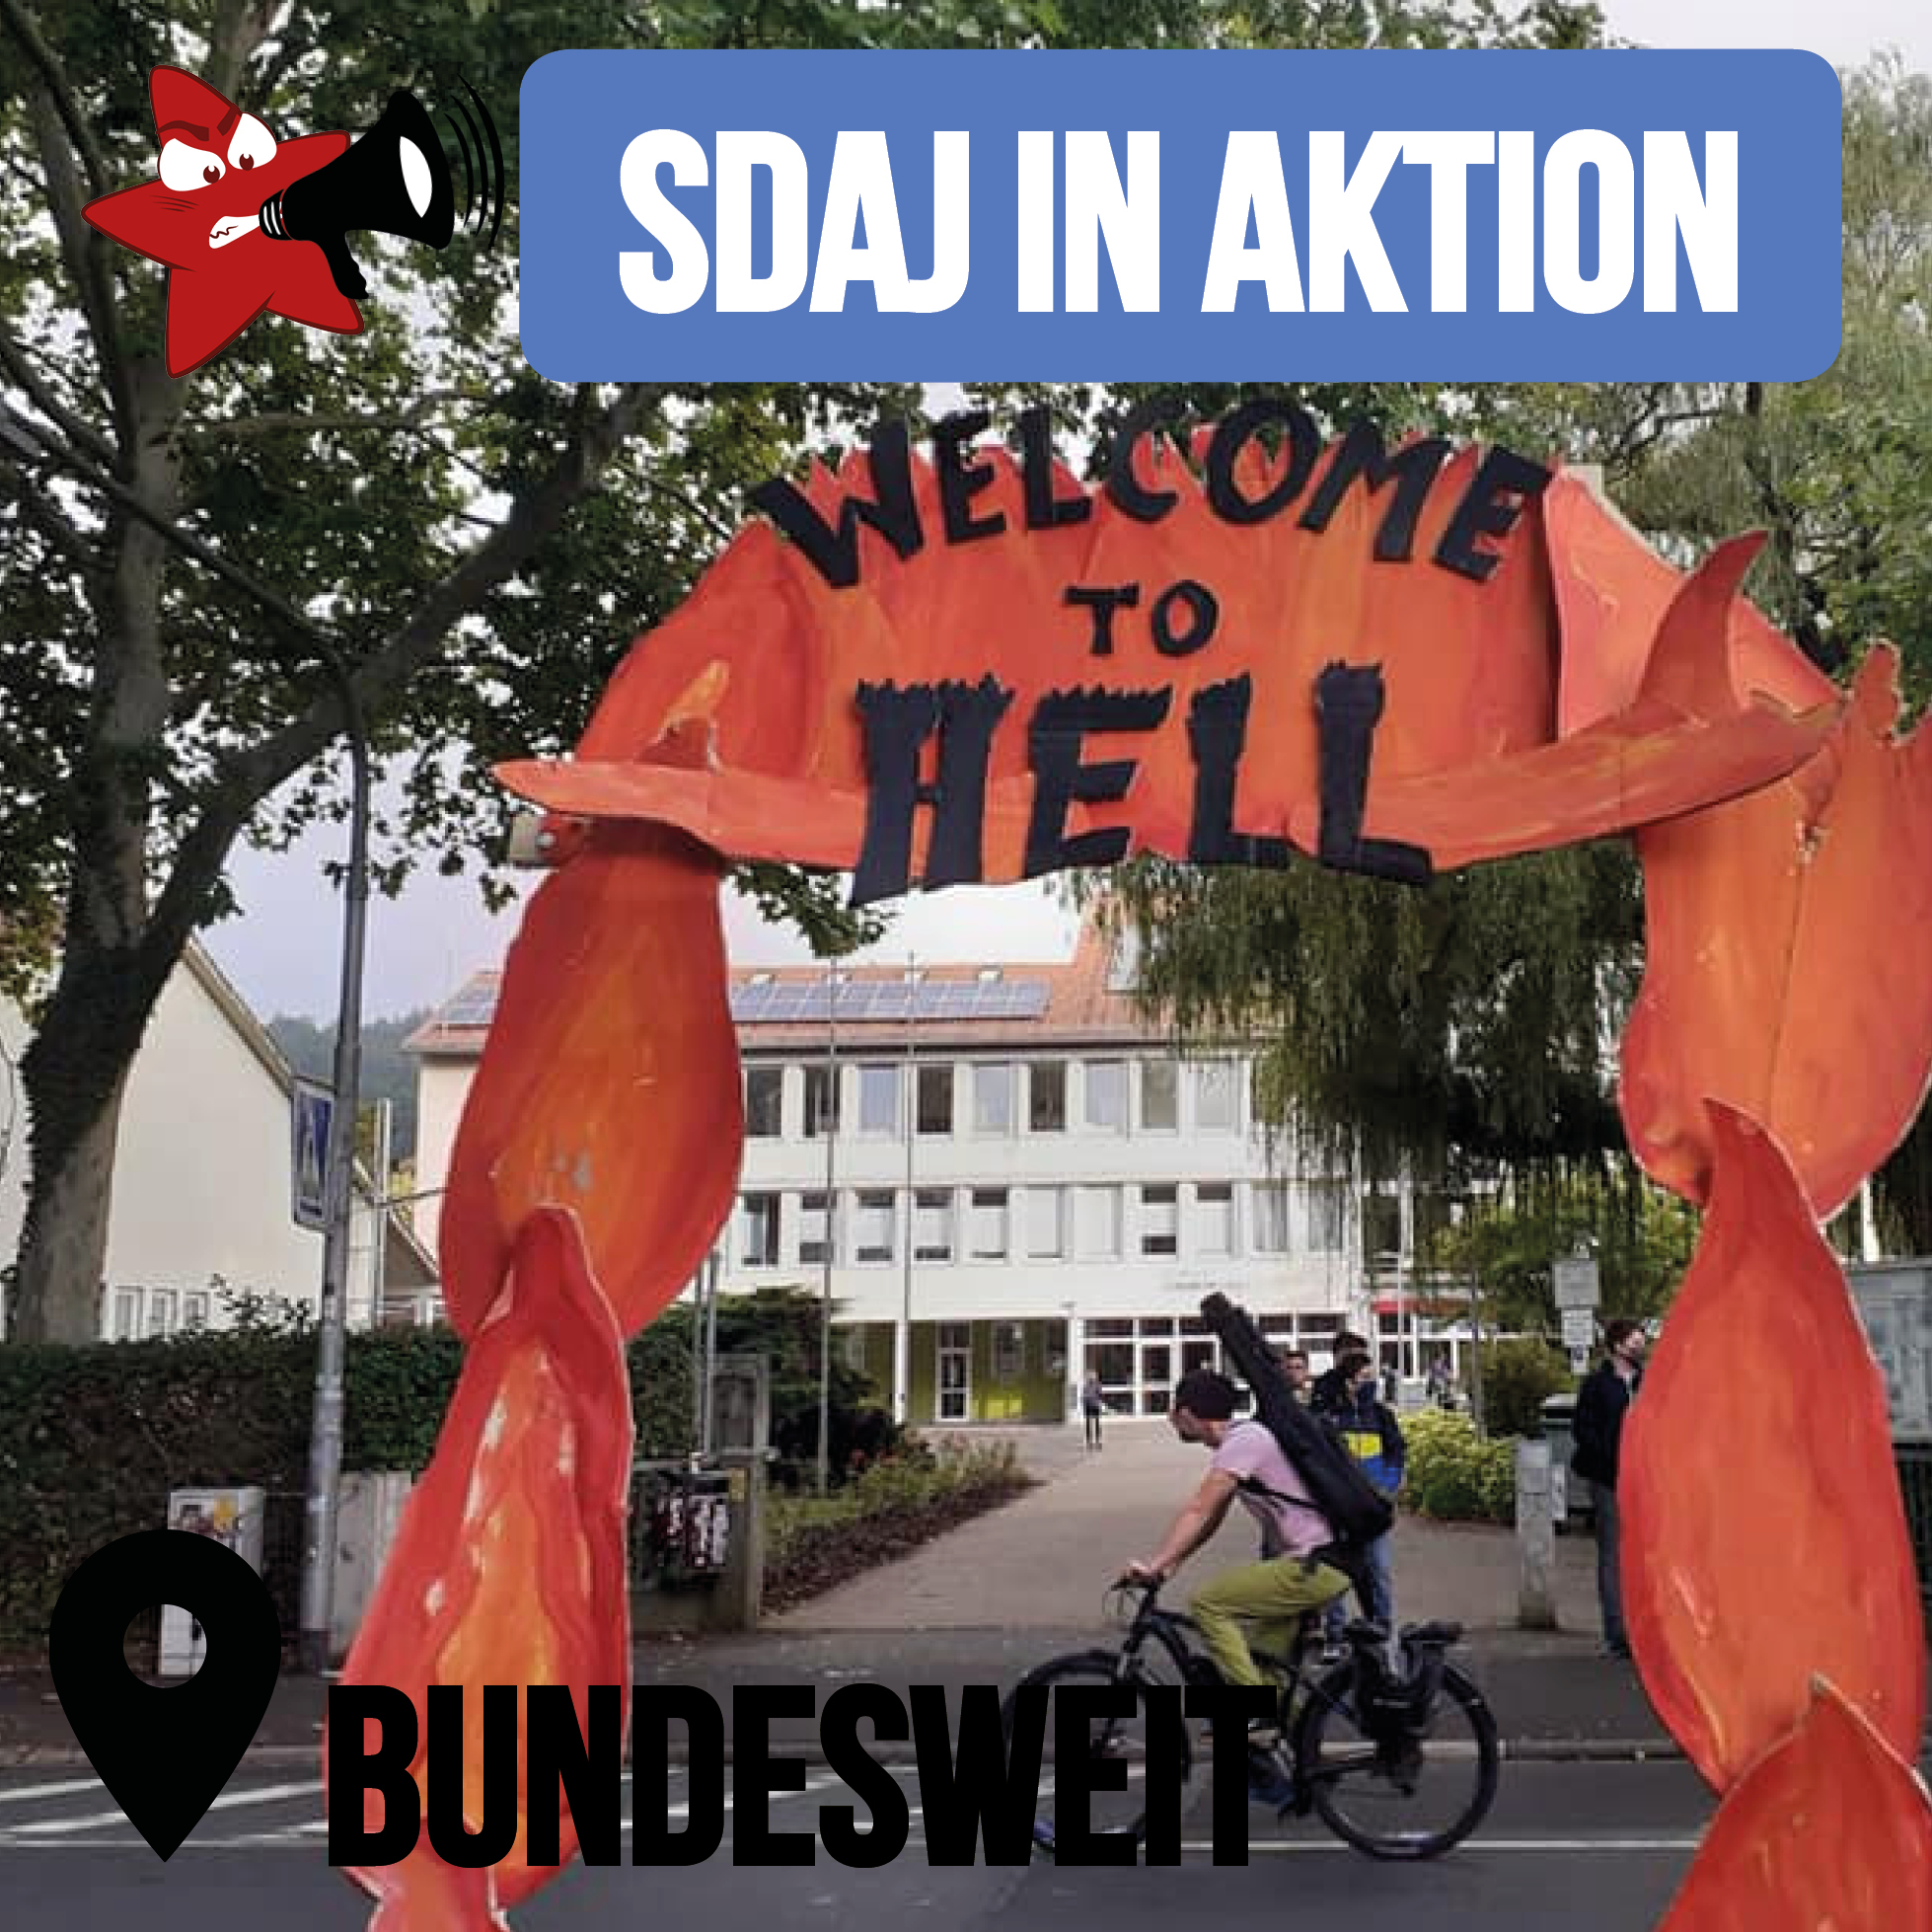 SDAJ in Aktion: bundesweit